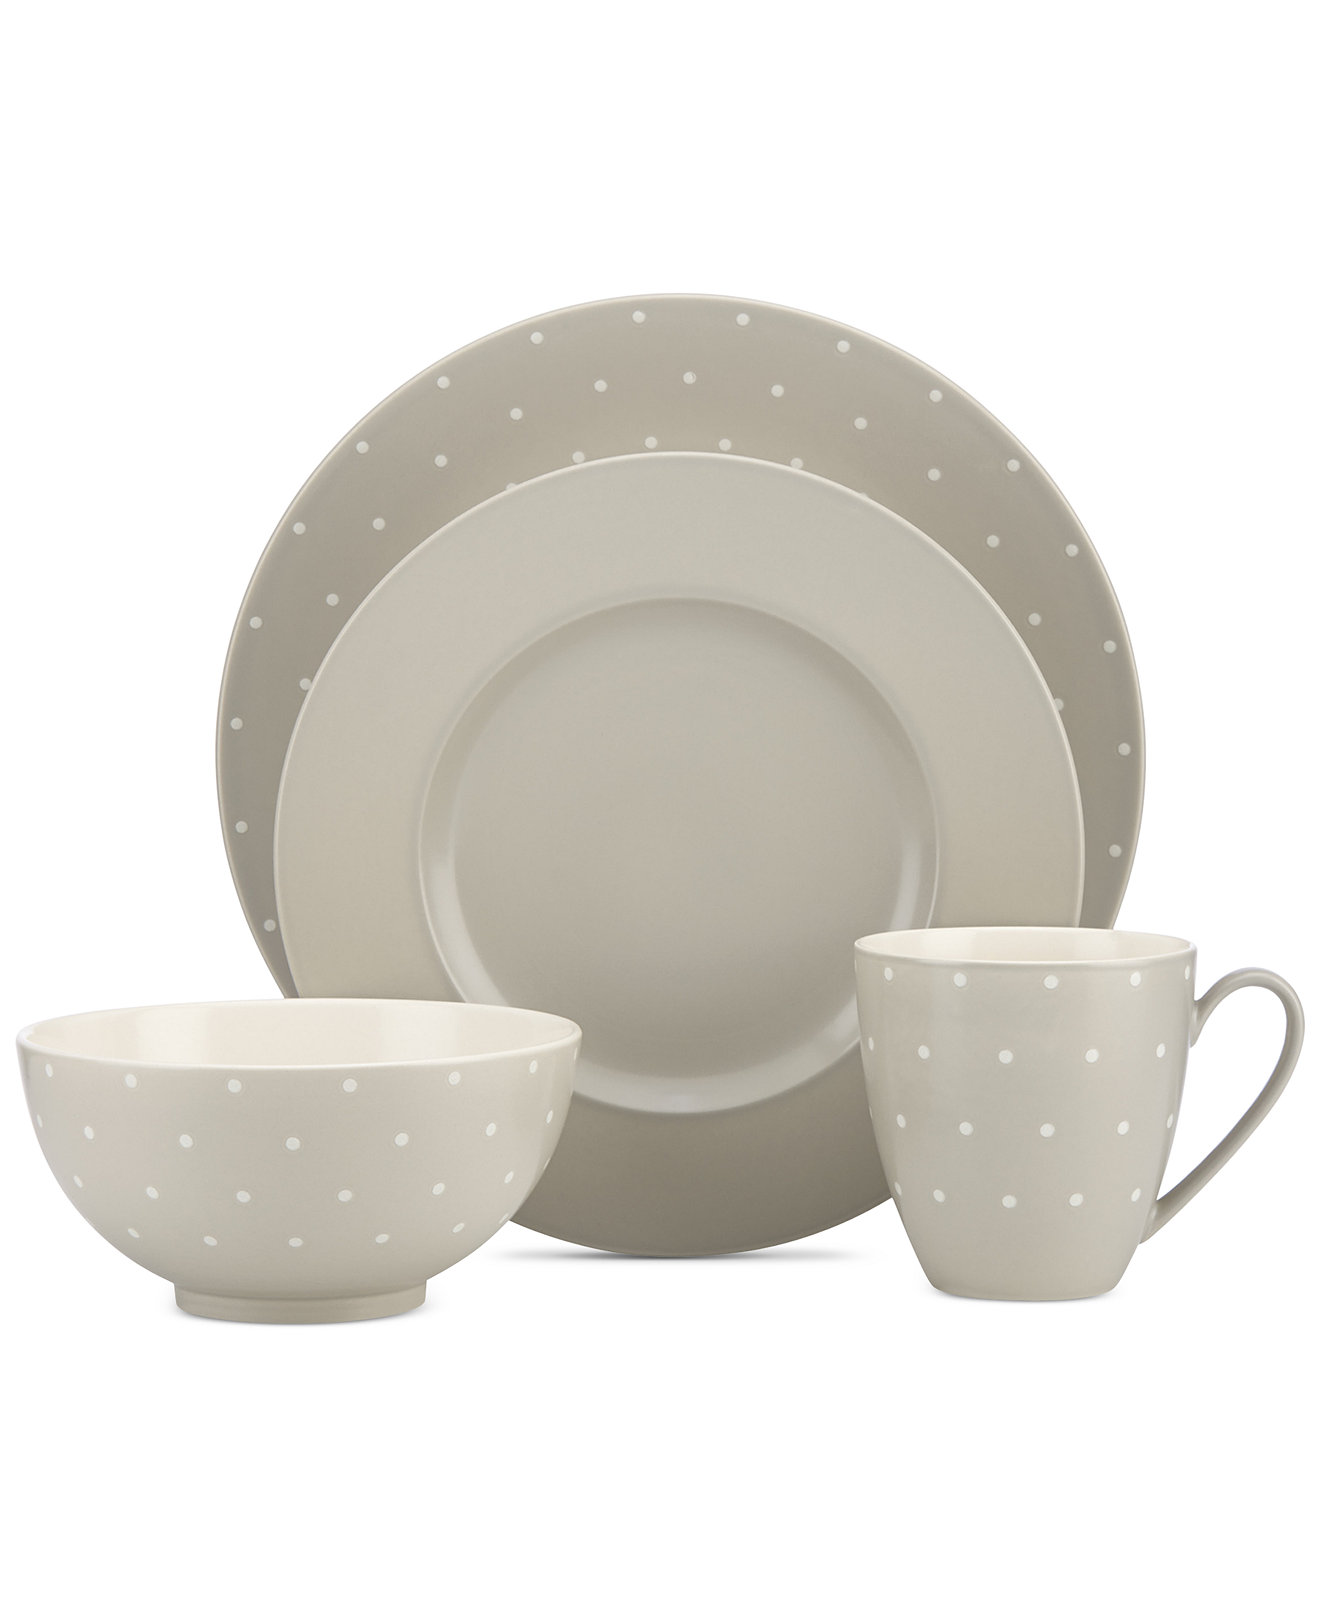 Casual Dinnerware Kate Spade Dining Collections - Macy's